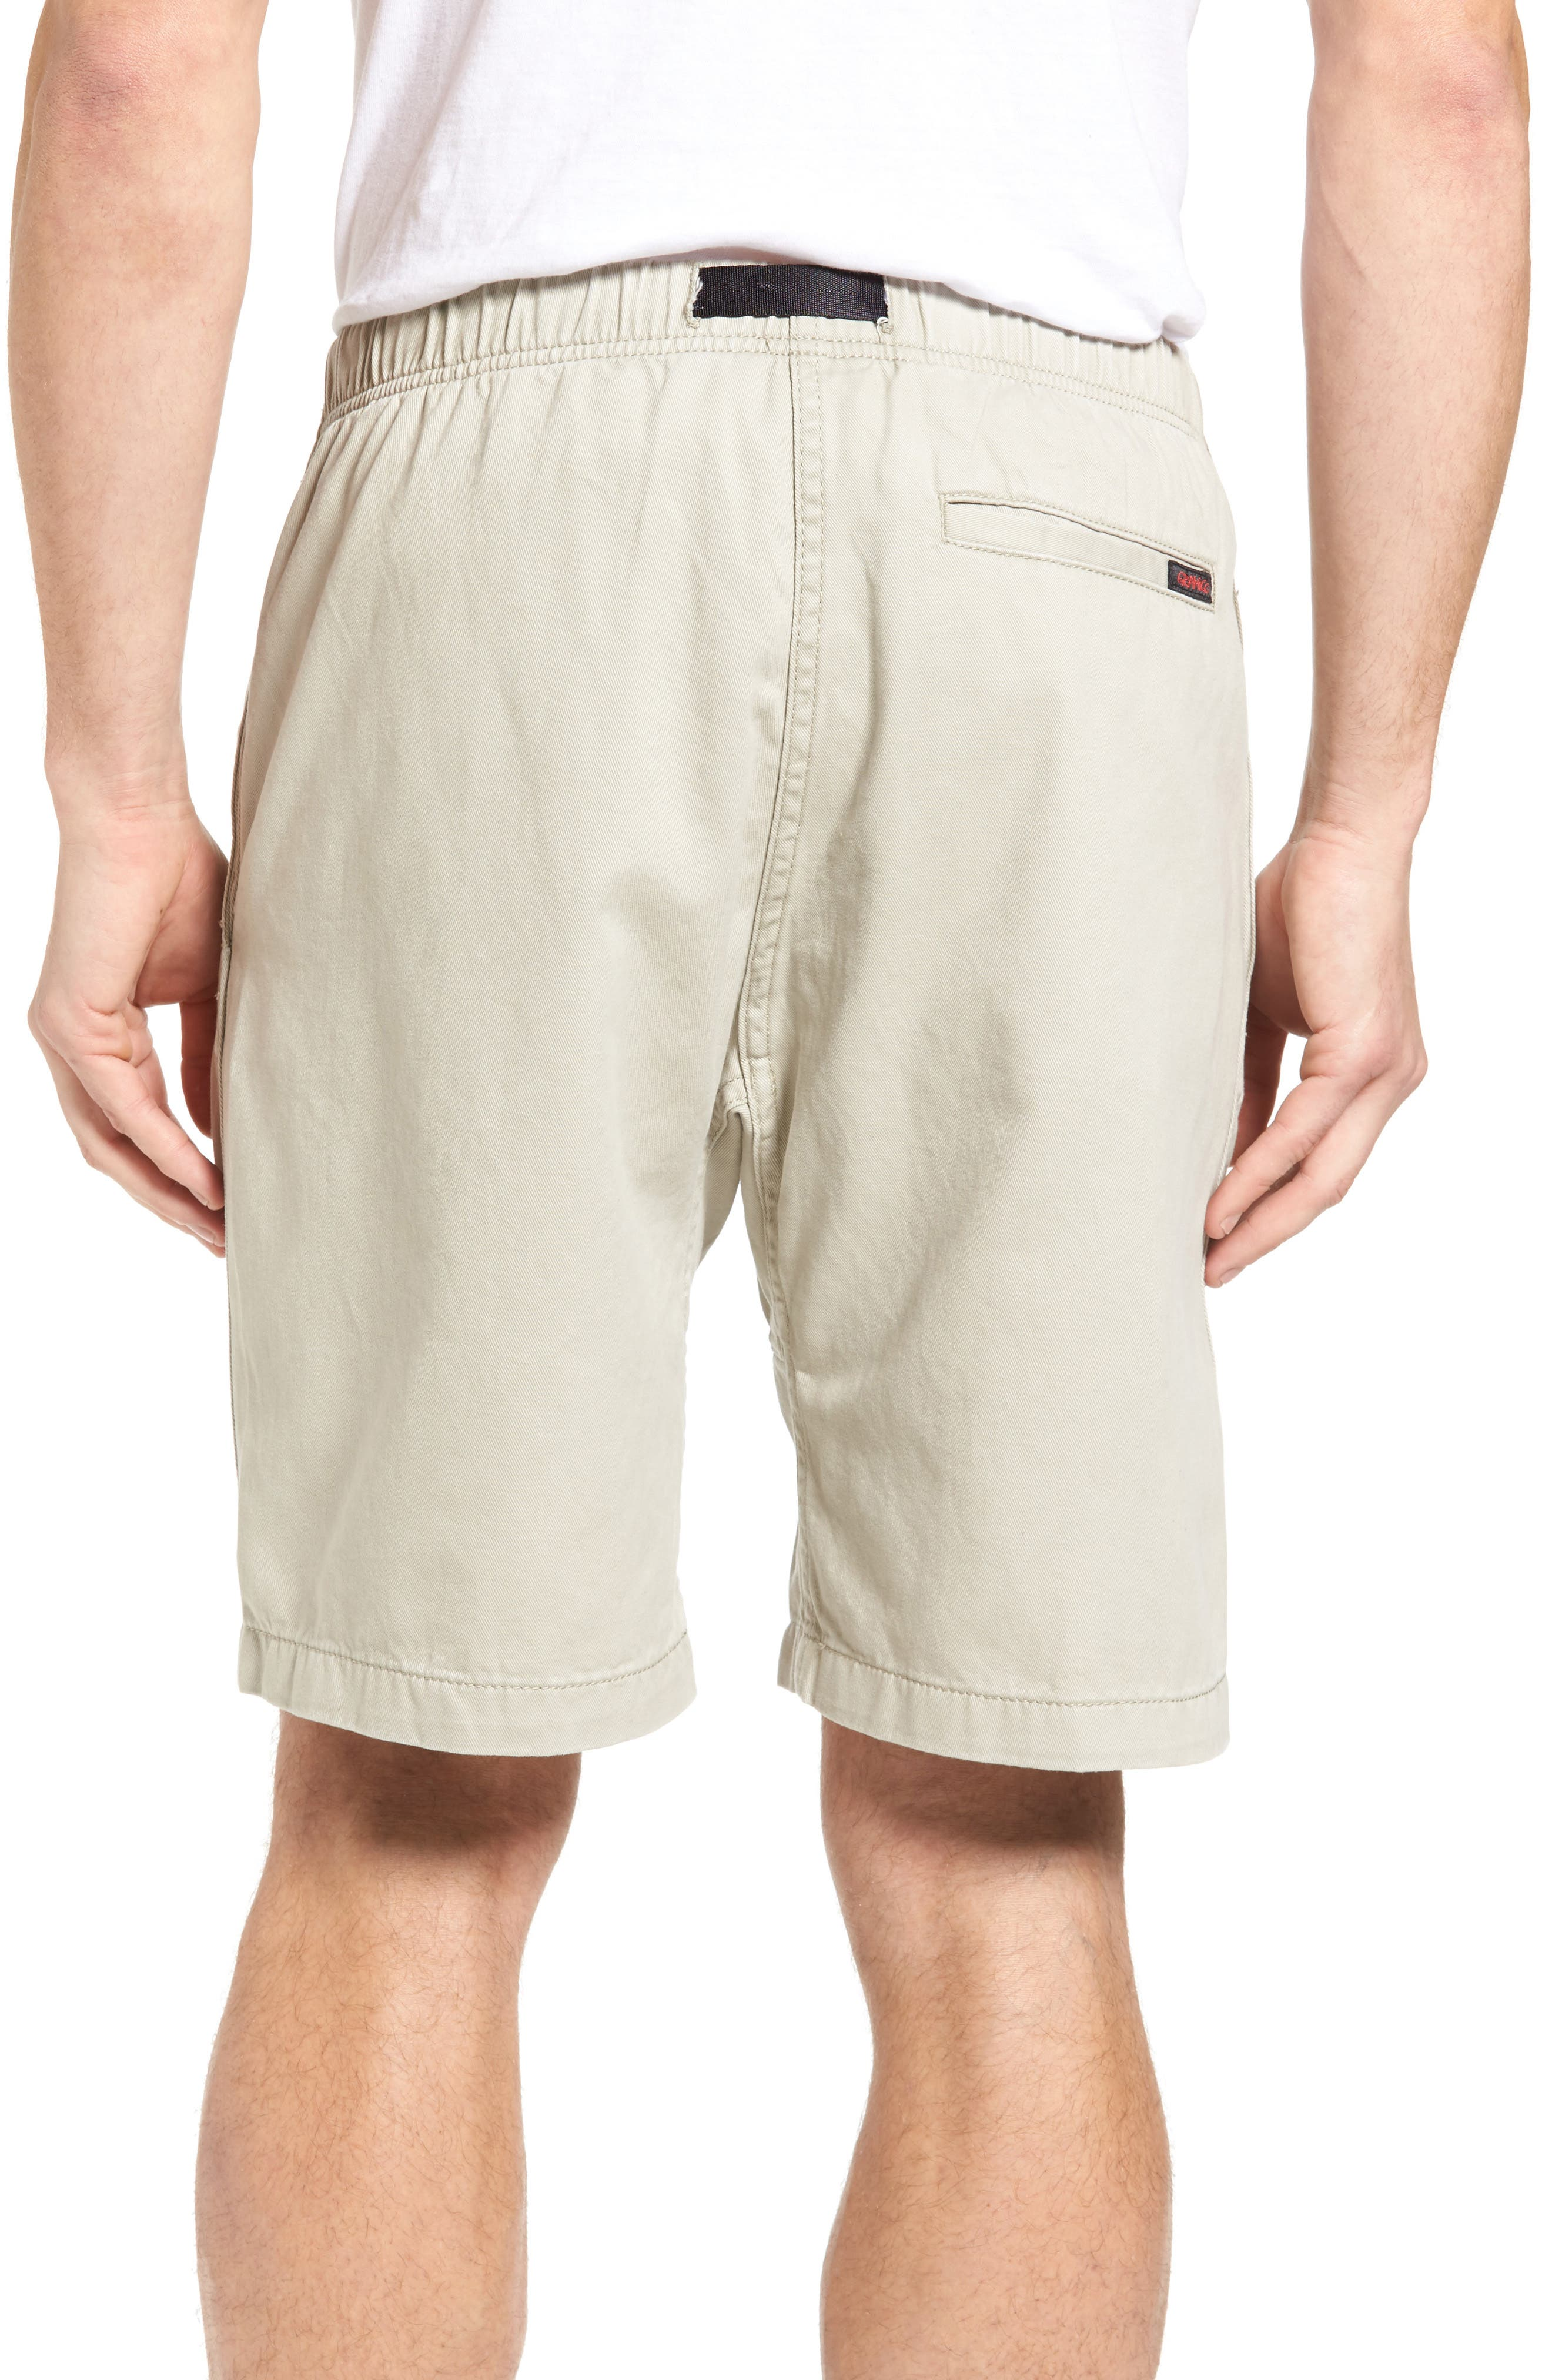 Rockin Sport Shorts,                             Alternate thumbnail 13, color,